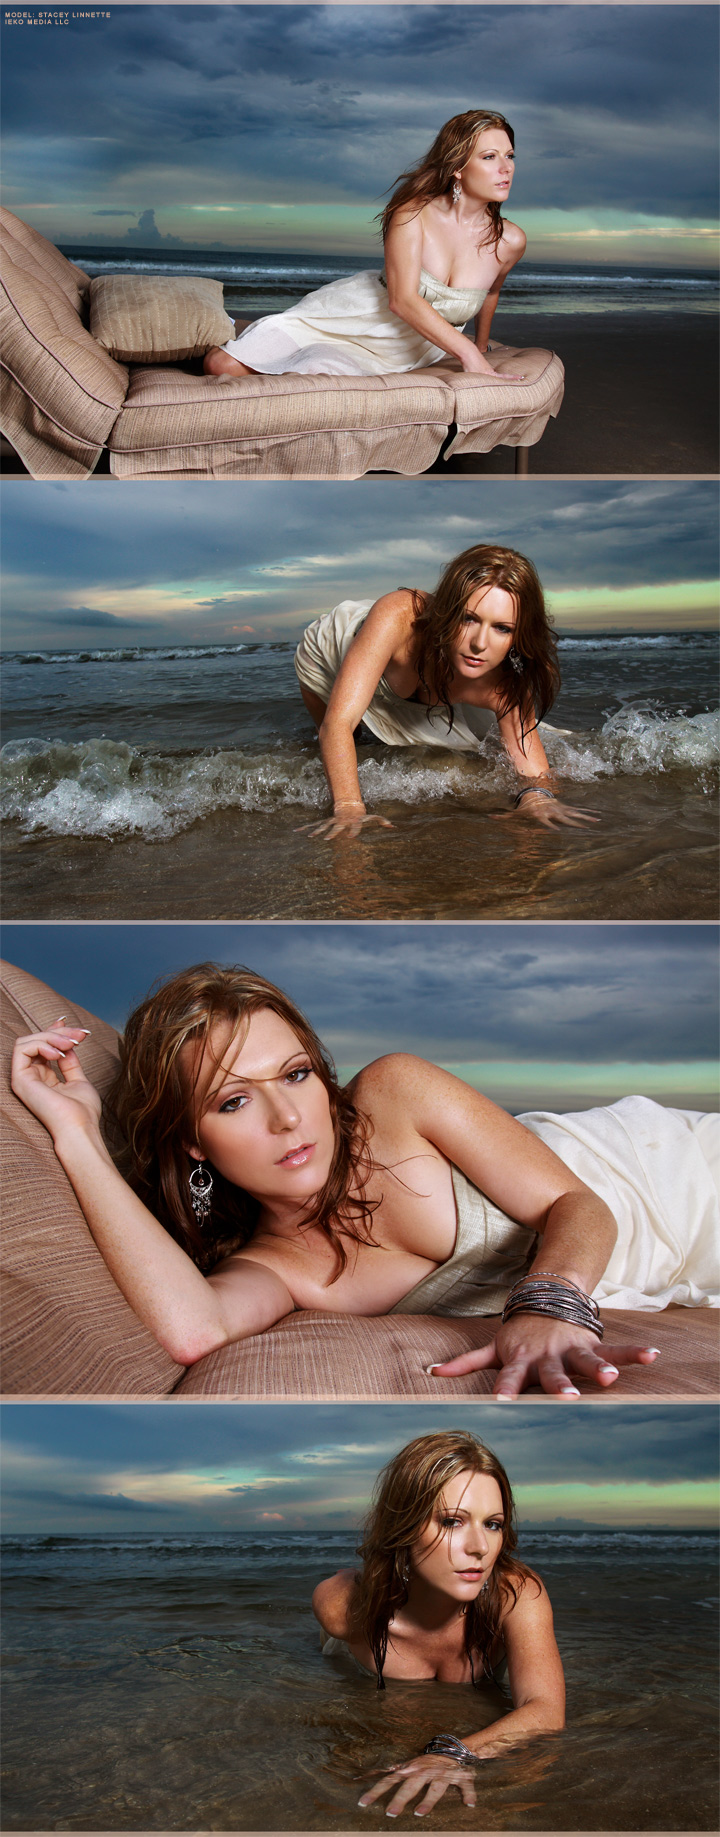 Shot in Galveston, Tx Dec 23, 2009 ©2009 IEKO MEDIA LLC Stacey Galveston Beach Shoot